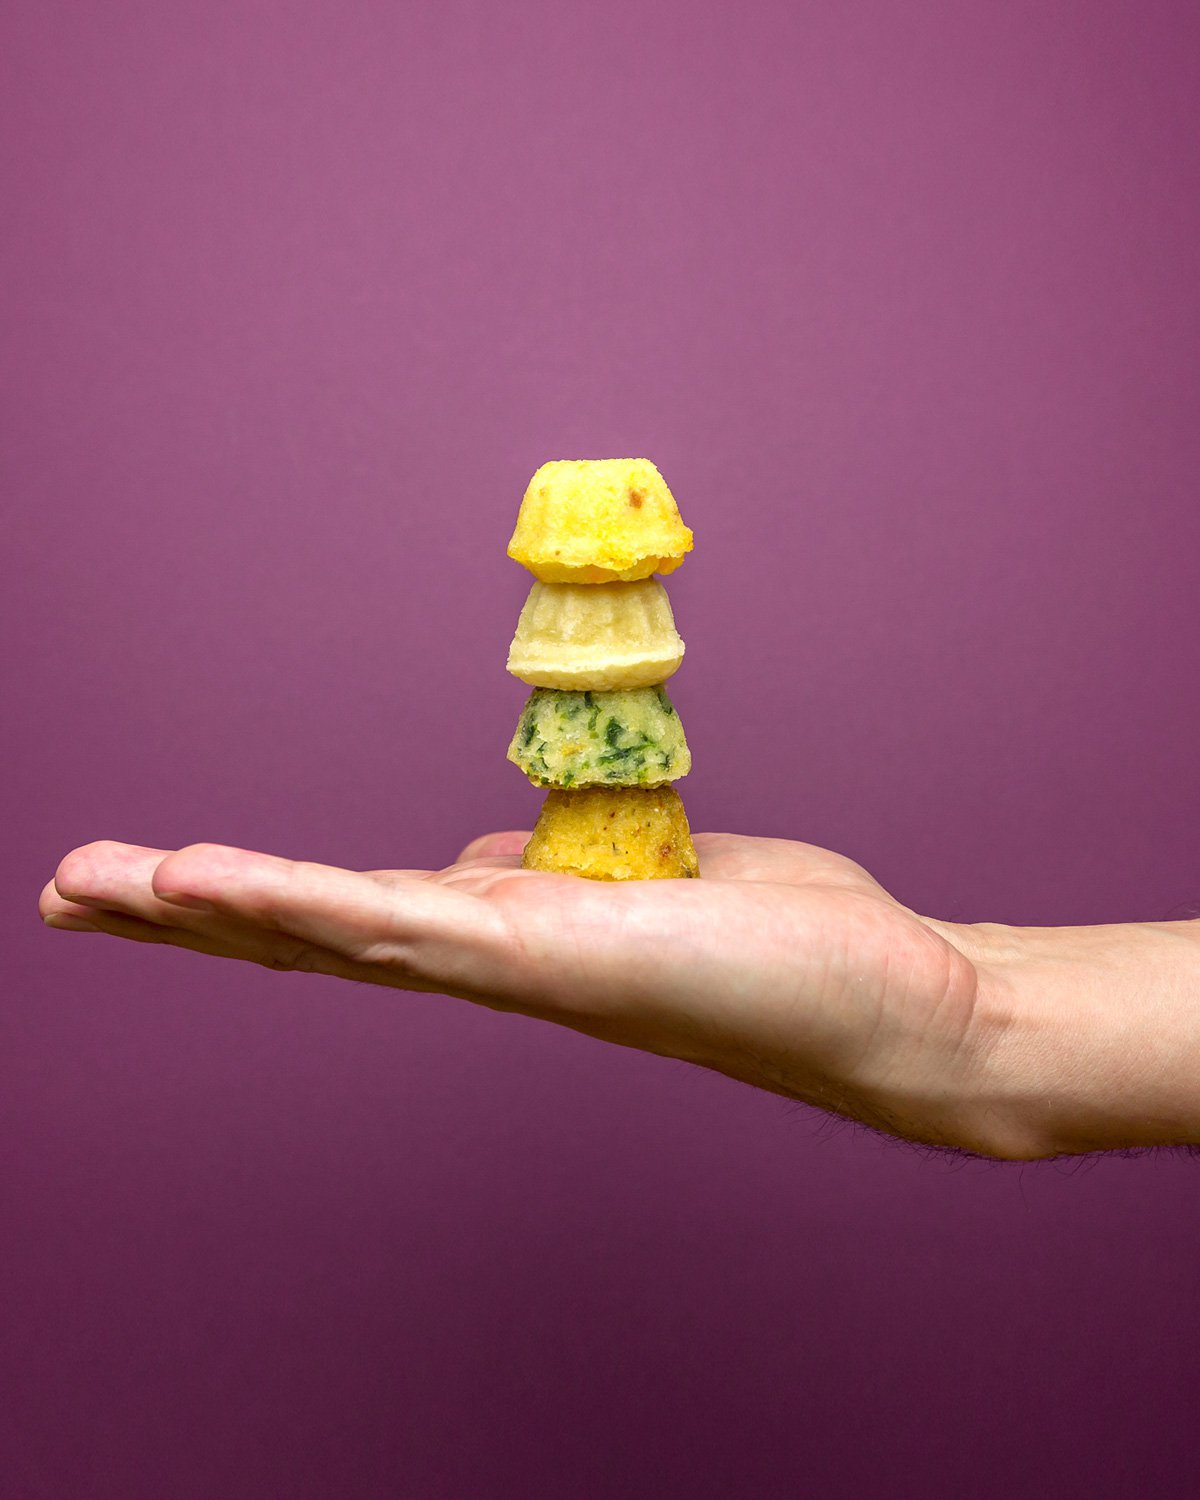 Lil' Franz cakes stacked on hand